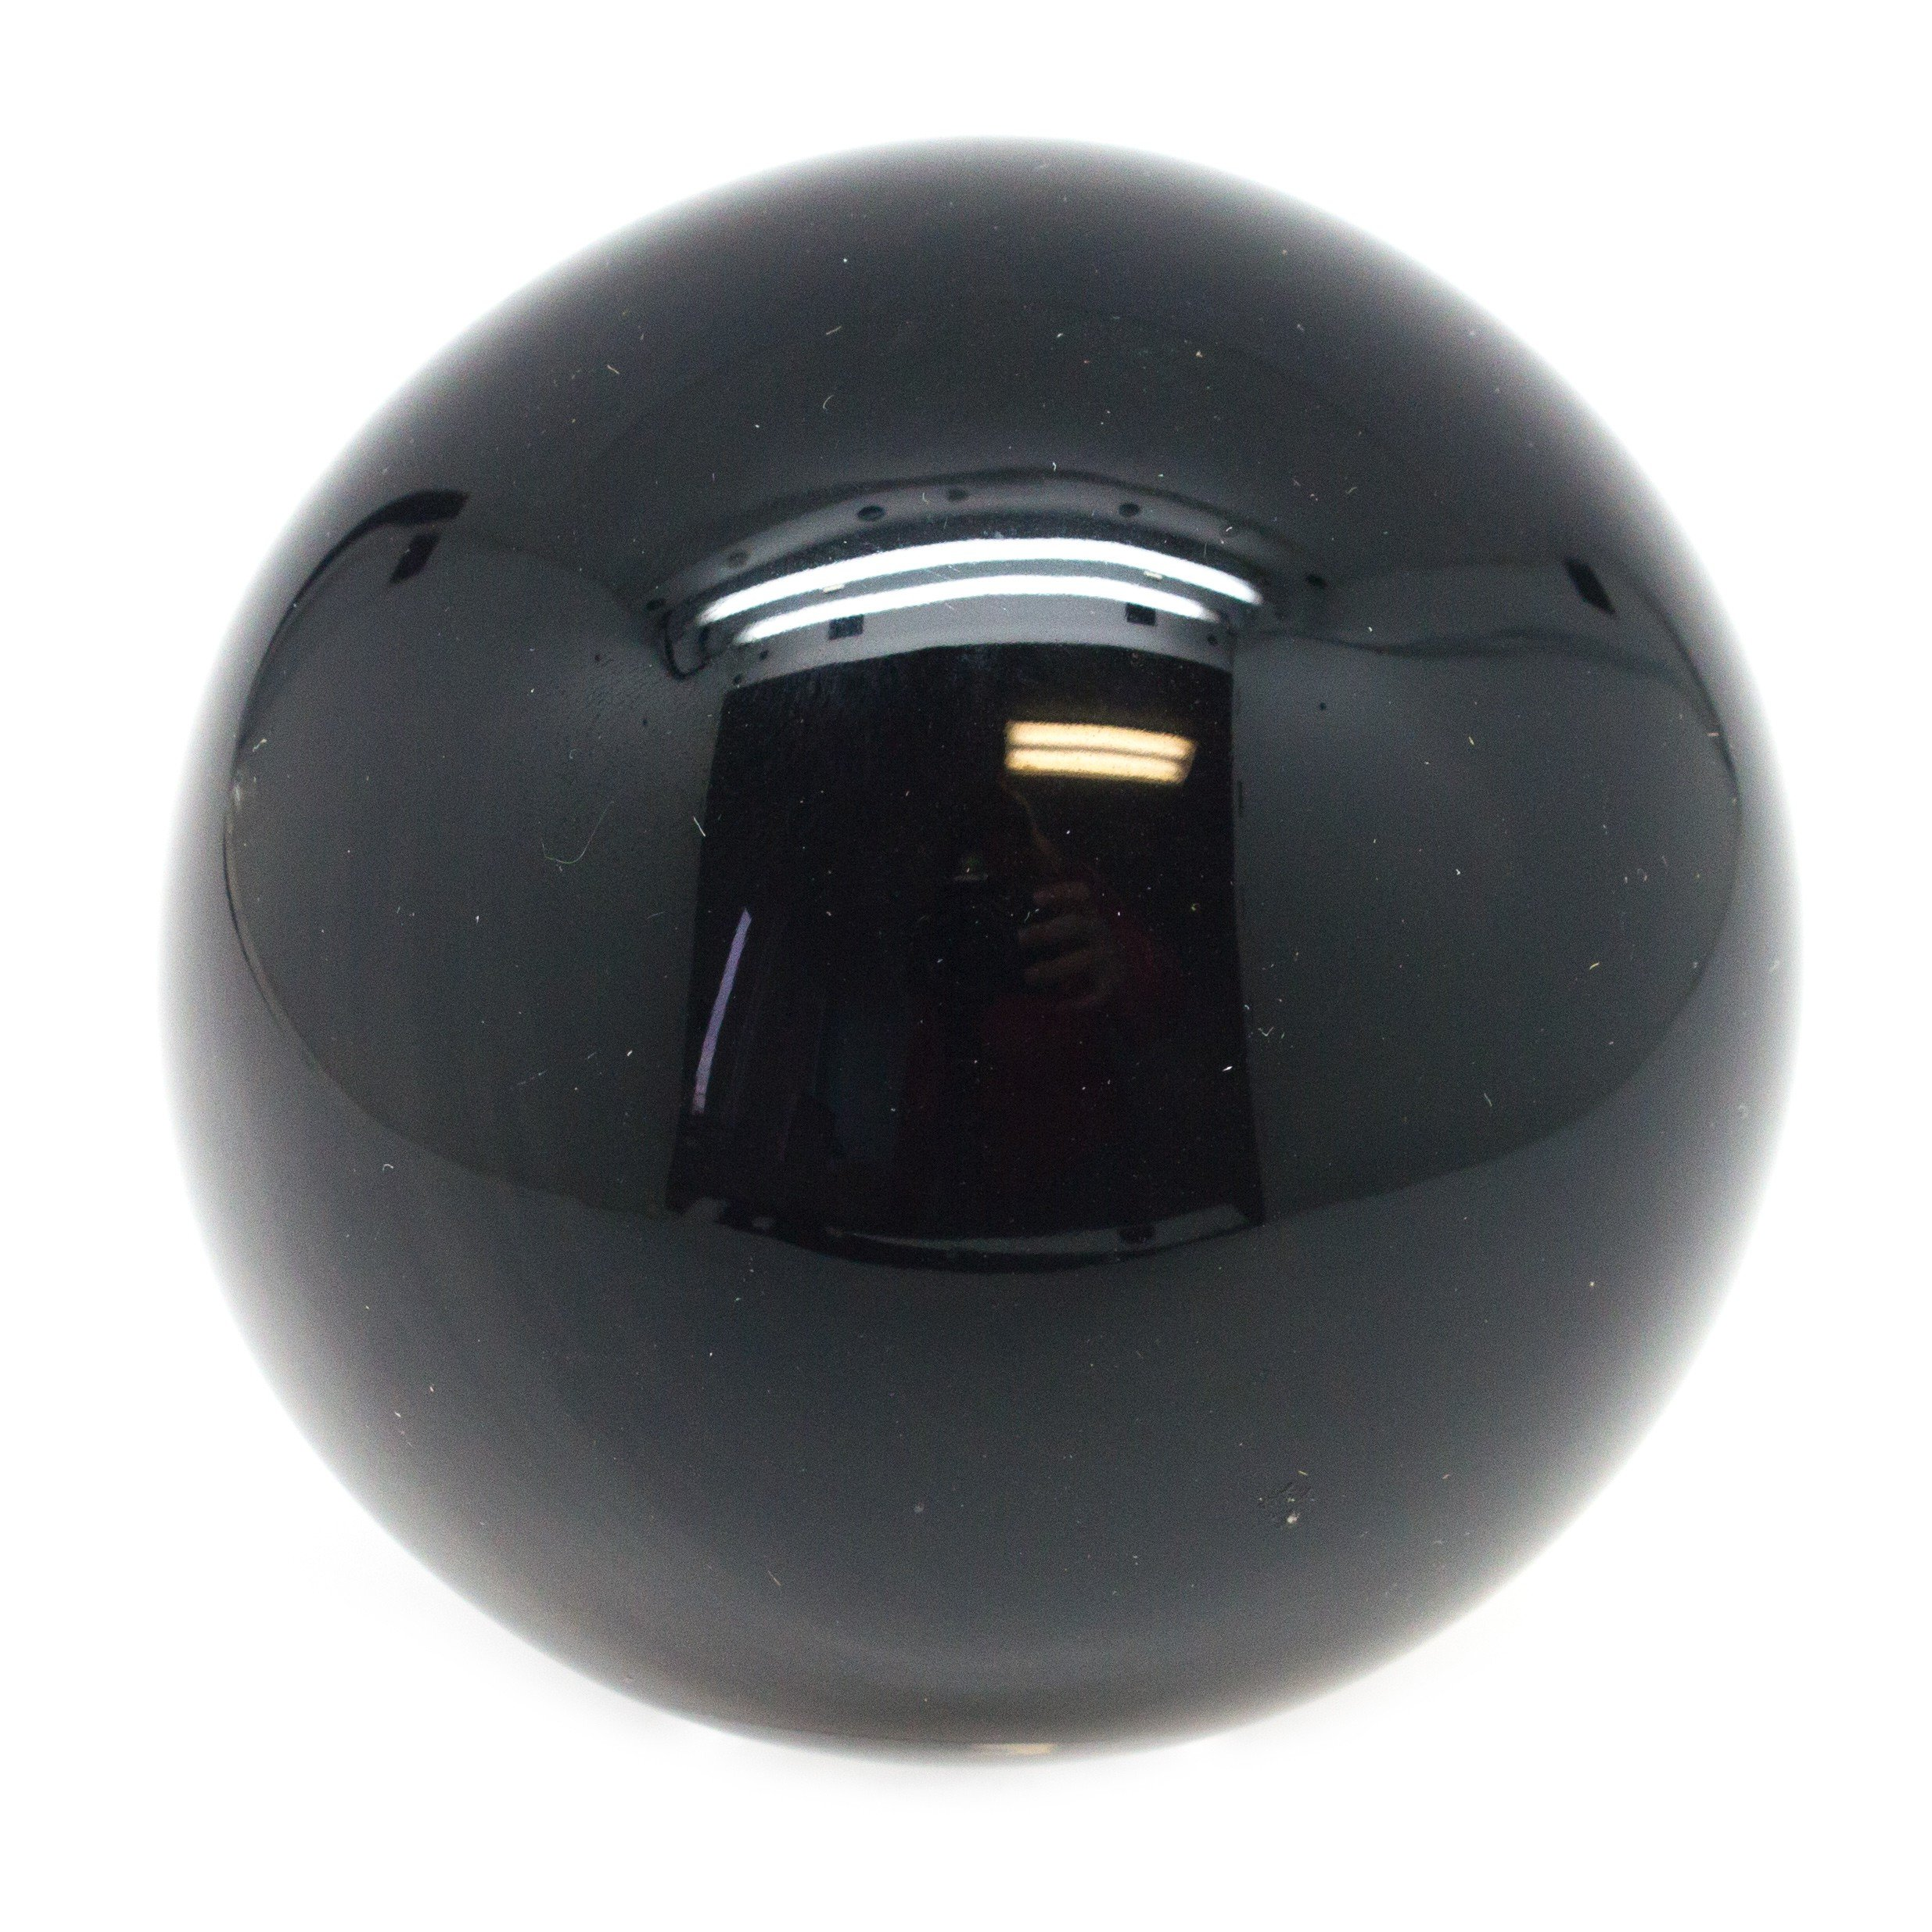 Order-made Super Large Black Obsidian Sphere, 400 mm / 16 inch Diameter, 160 lbs, Rare Large Crystal Ball, For Protection, Decoration, Healing, Meditation, Fengshui, Customer-made & Hand-made by Mina Heal